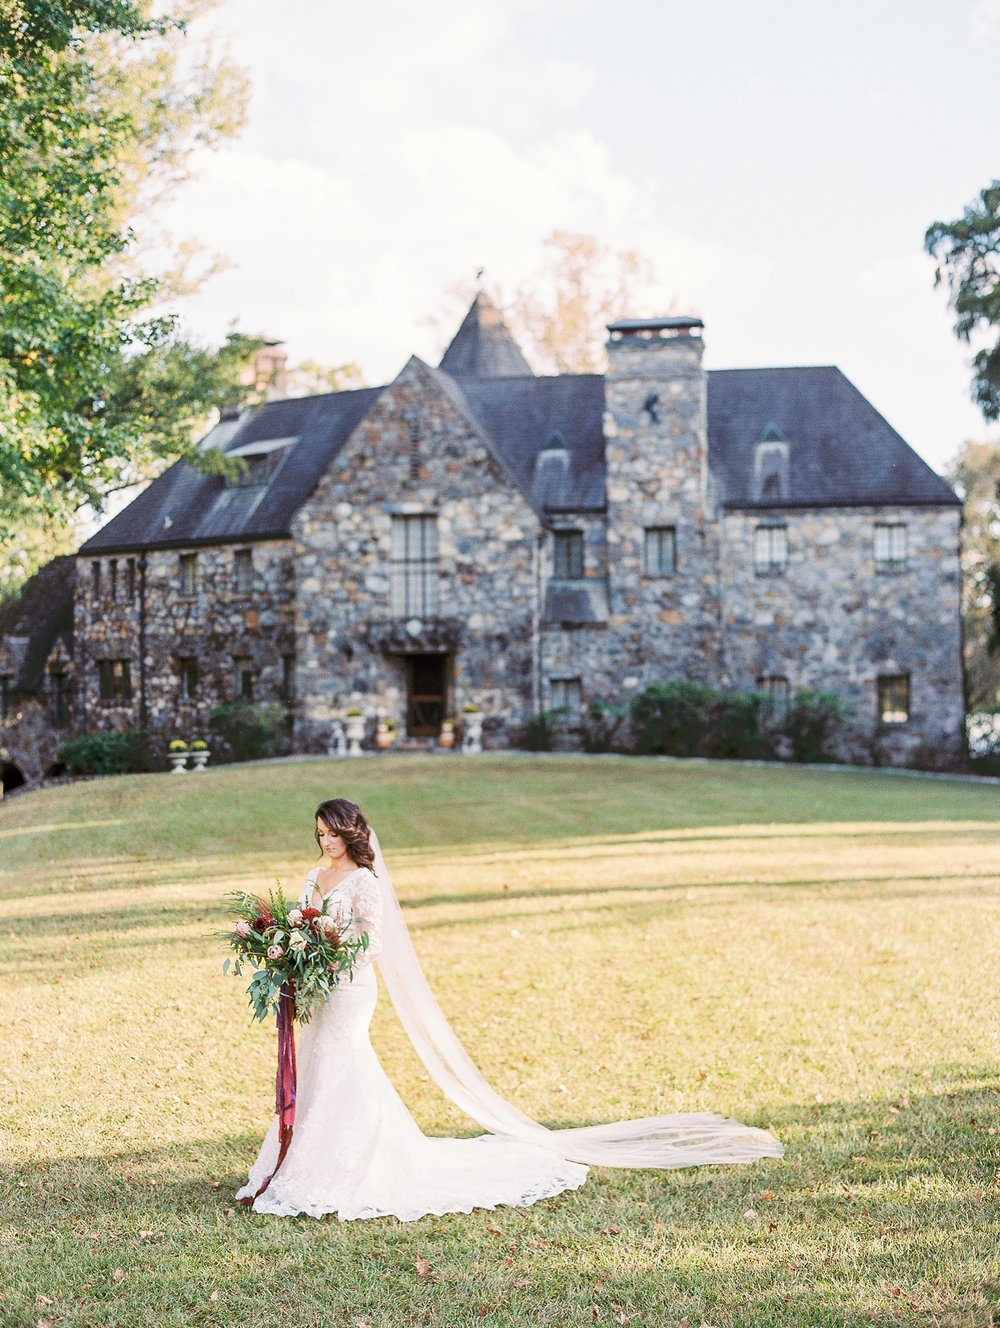 Castle on Stagecoach Wedding Arkansas Photographer_0526.jpg